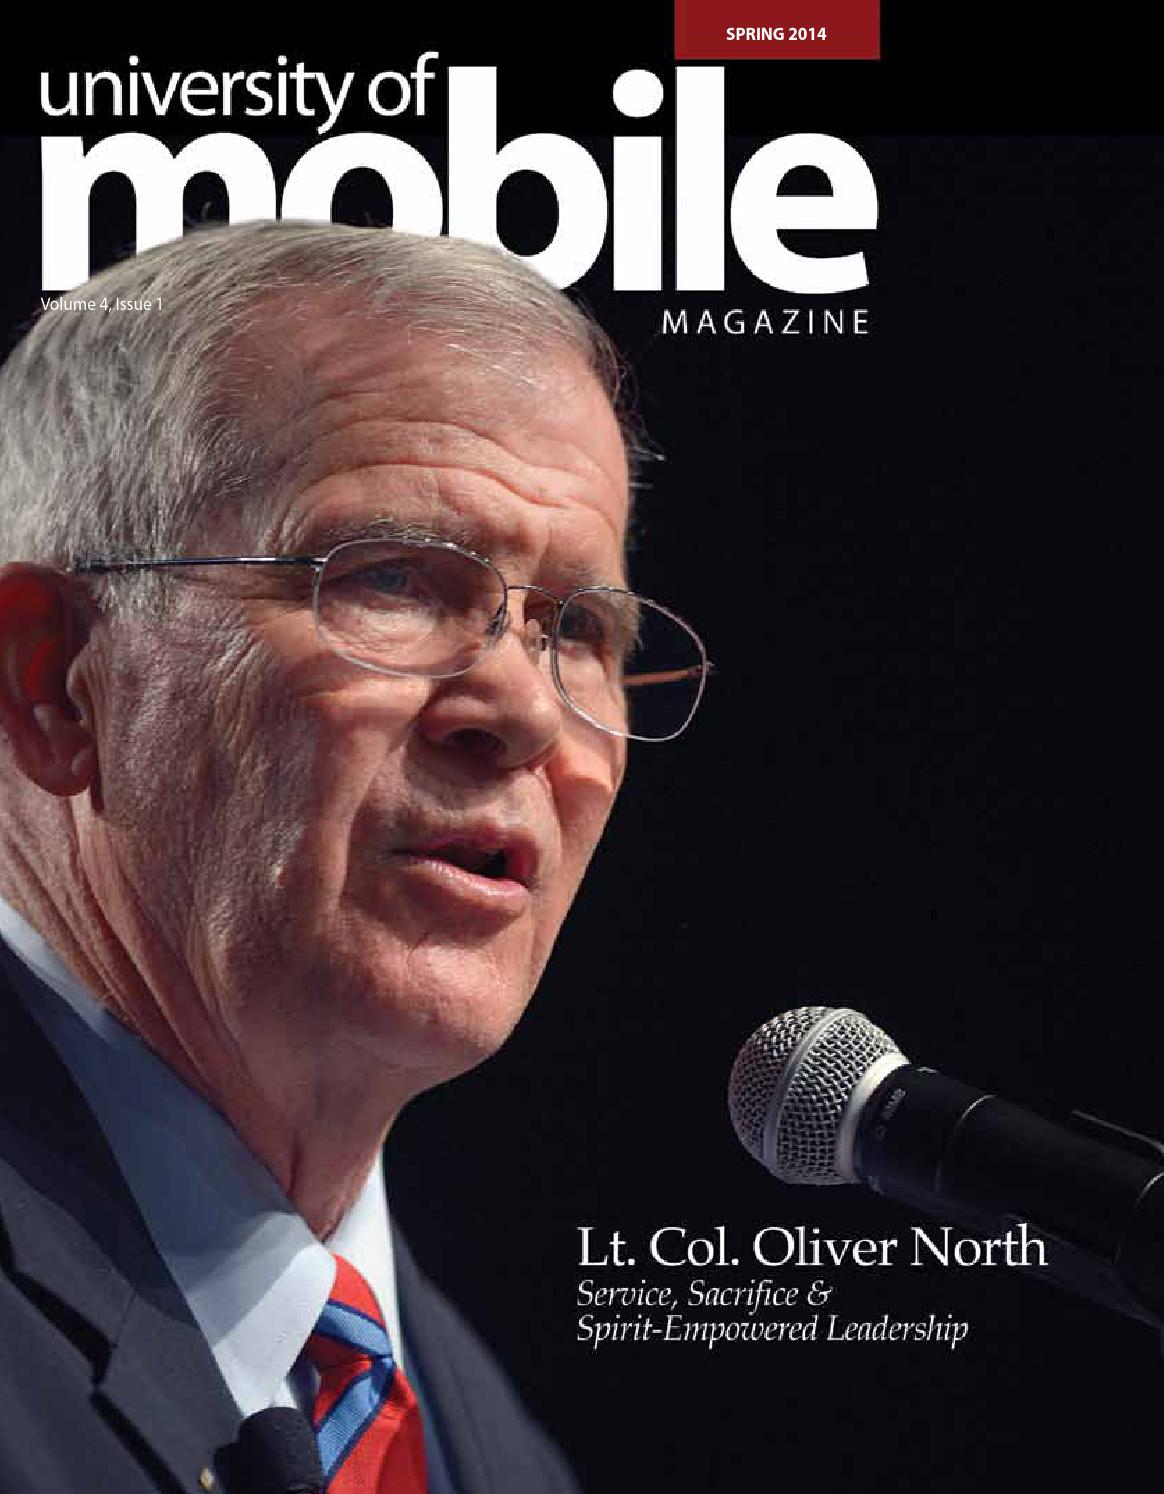 of mobile magazine spring 2014 issue by university of mobile